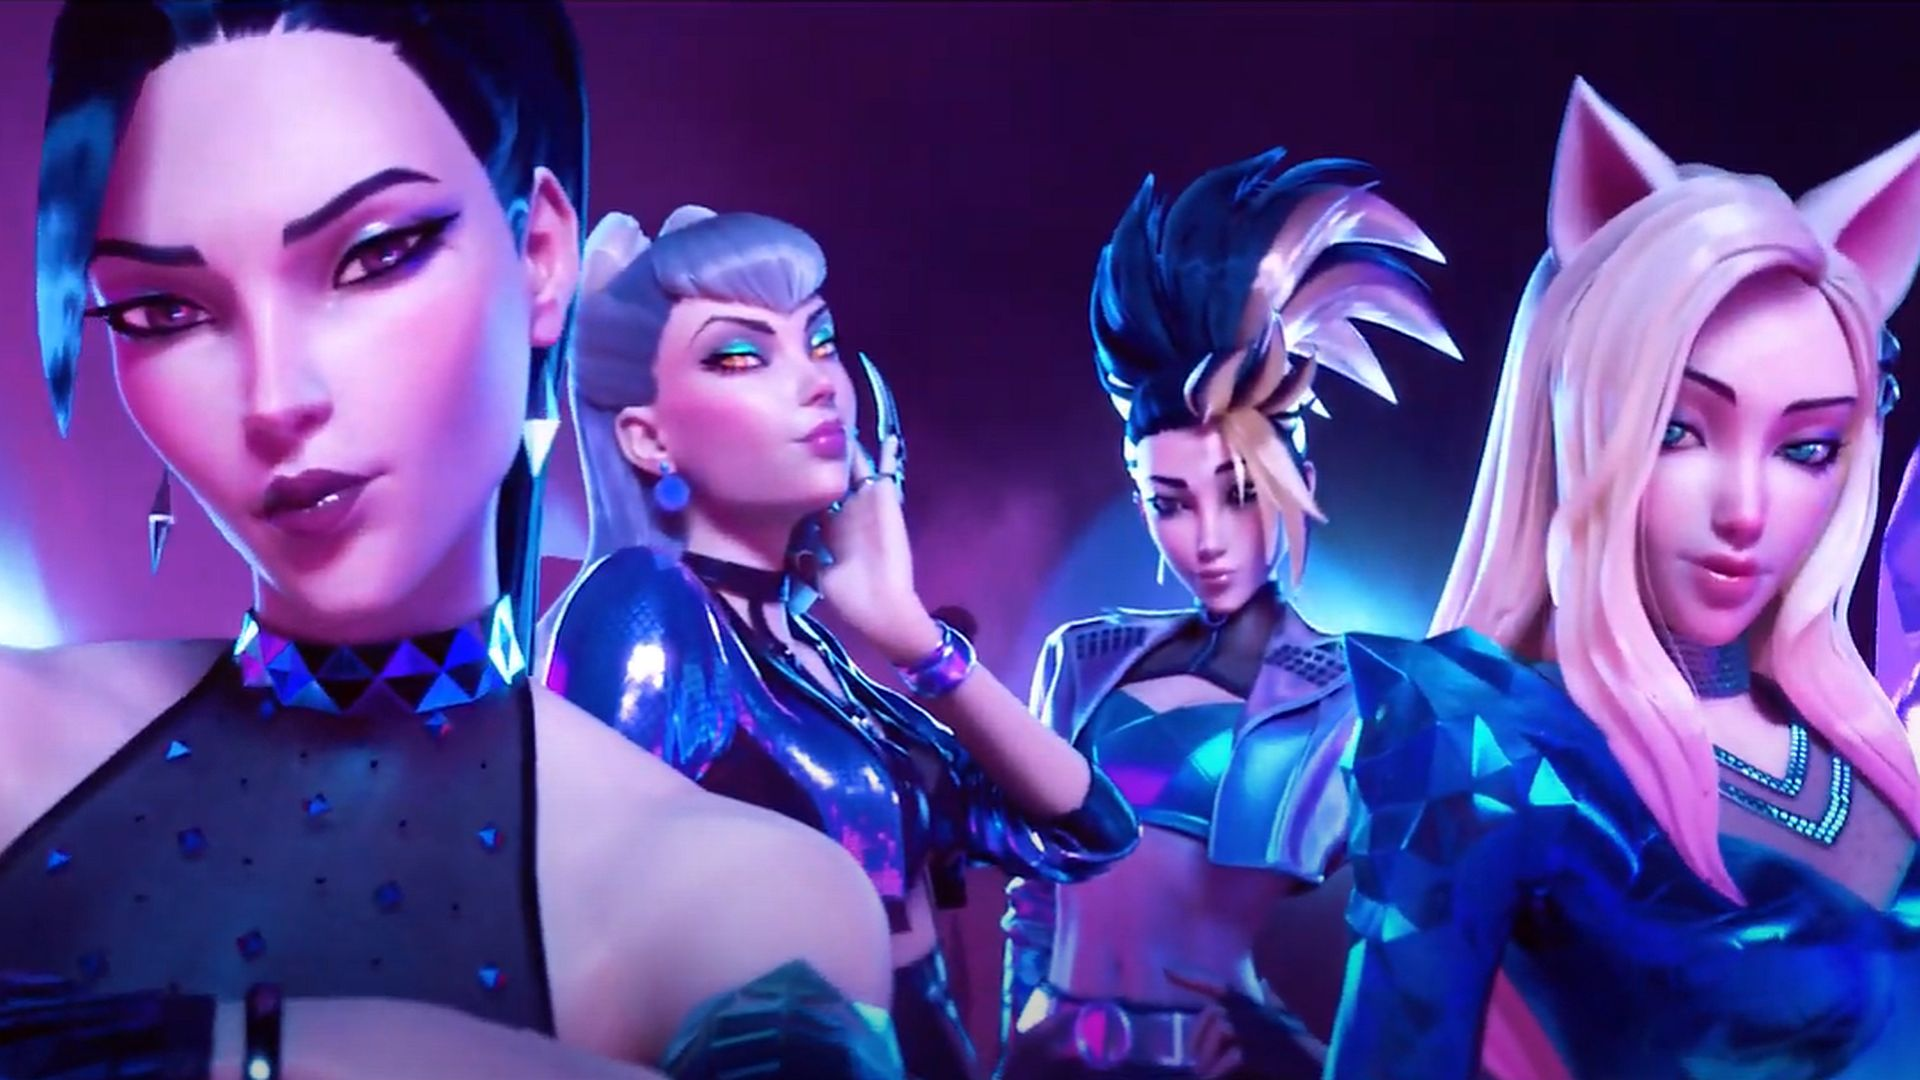 League of Legends group K/DA debuts new music clip – 'More' | PCGamesN